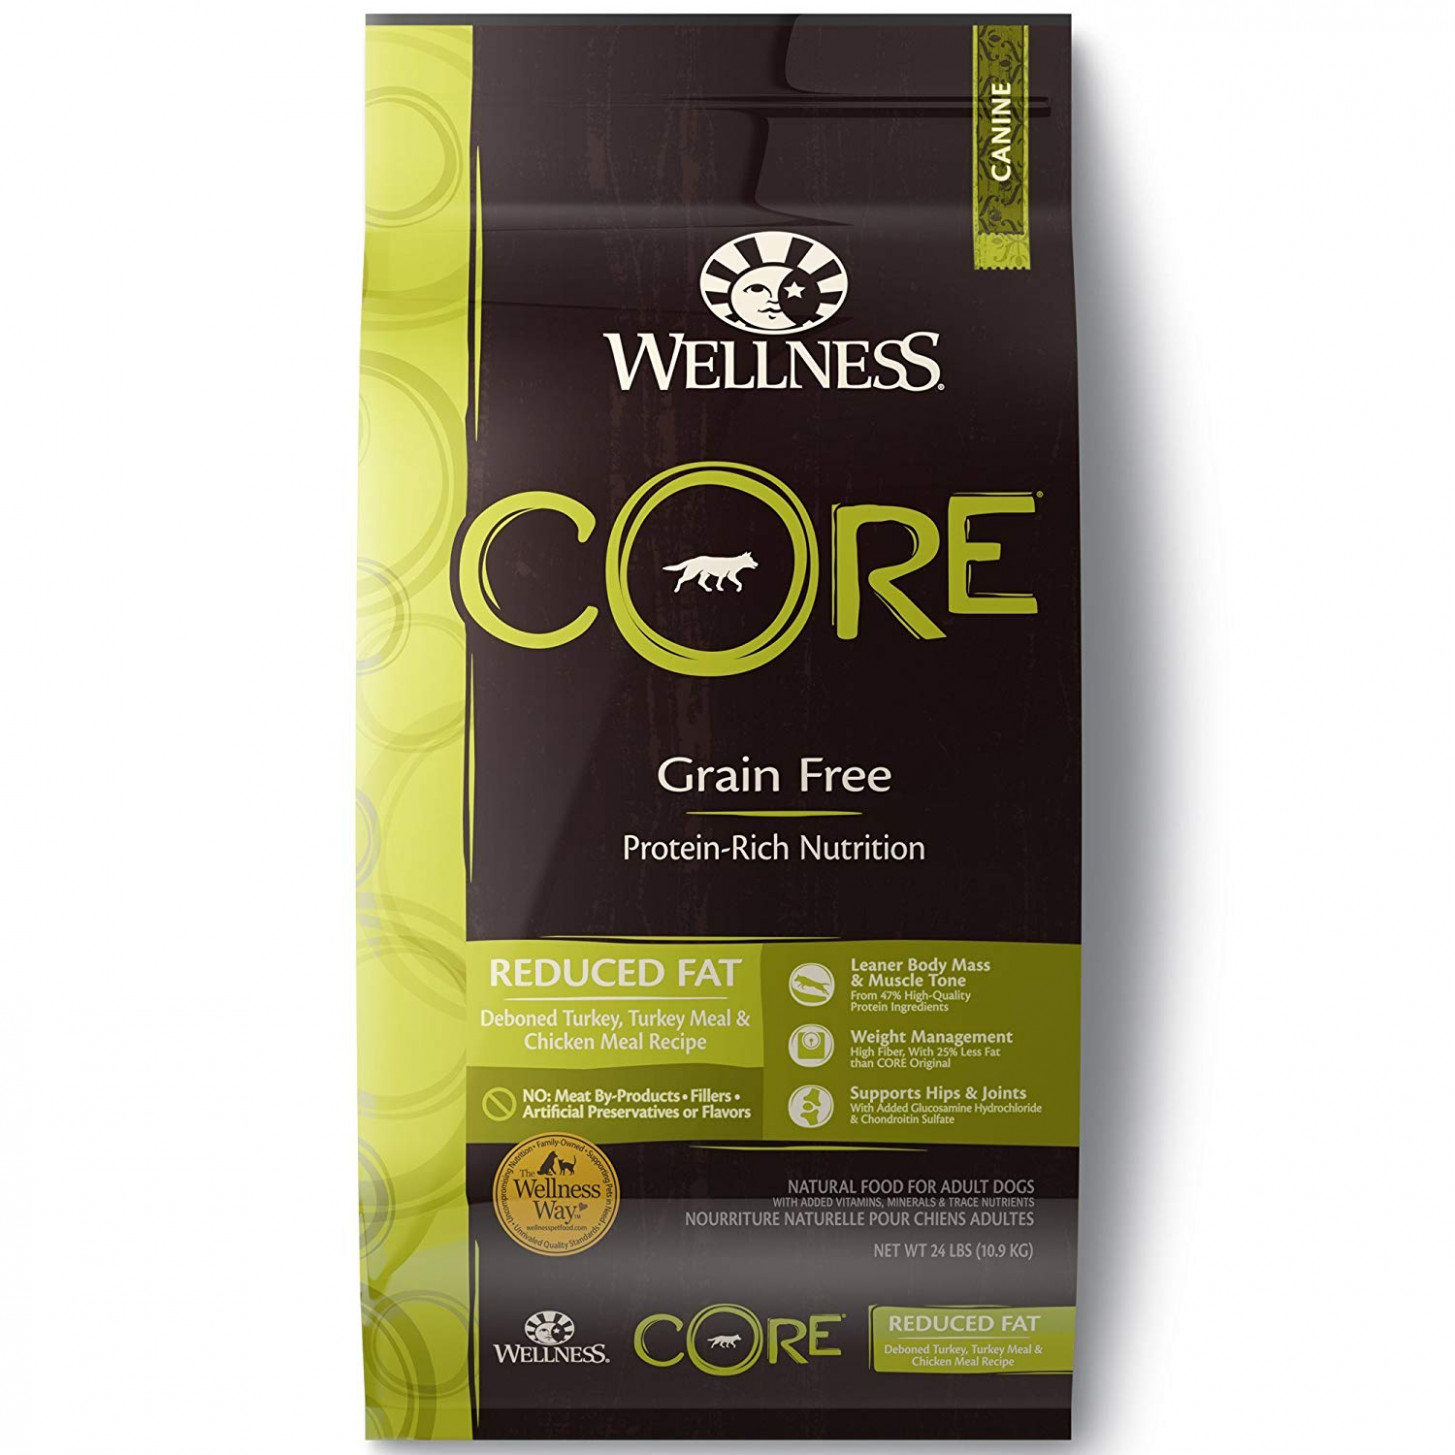 Wellness CORE Reduced Fat Dry Dog Food, 15-Pound Bag high ..